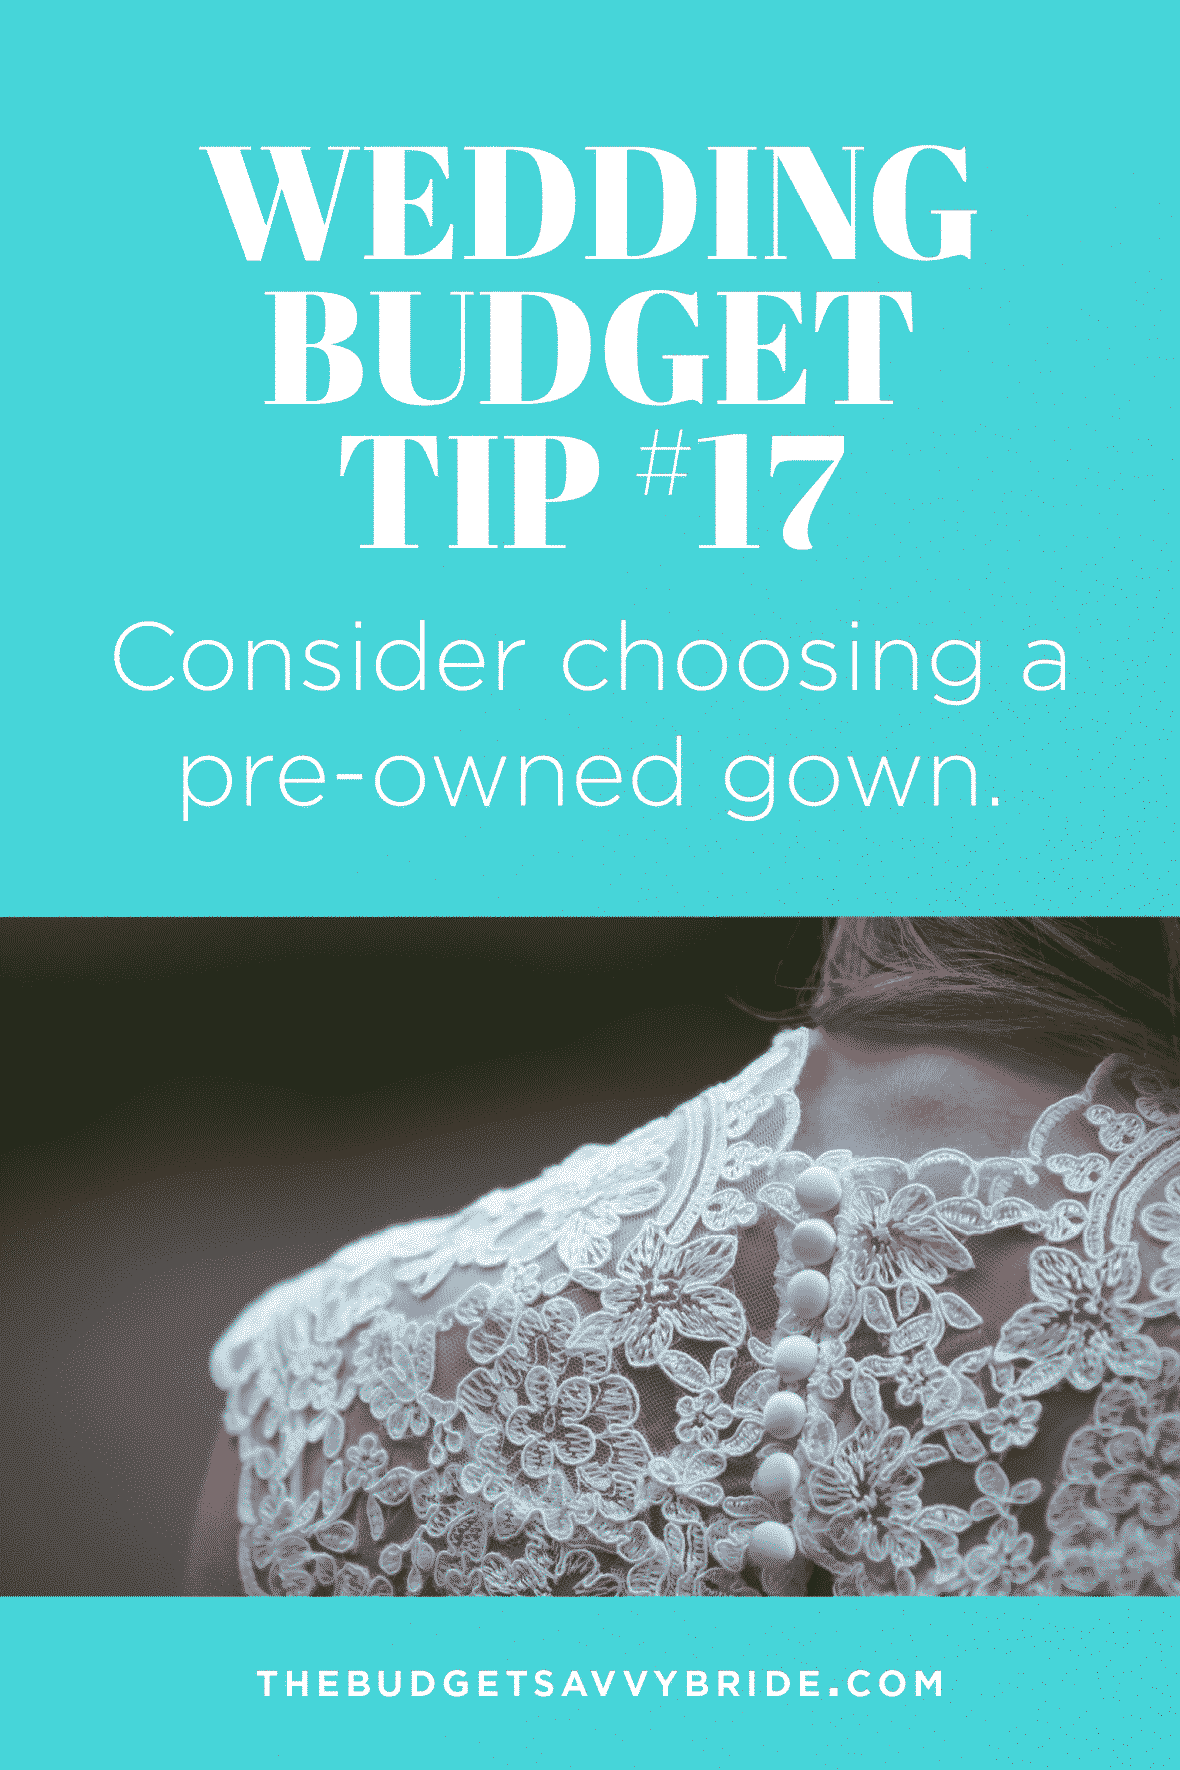 Want to save money on your wedding dress? Choose a pre-owned wedding gown!